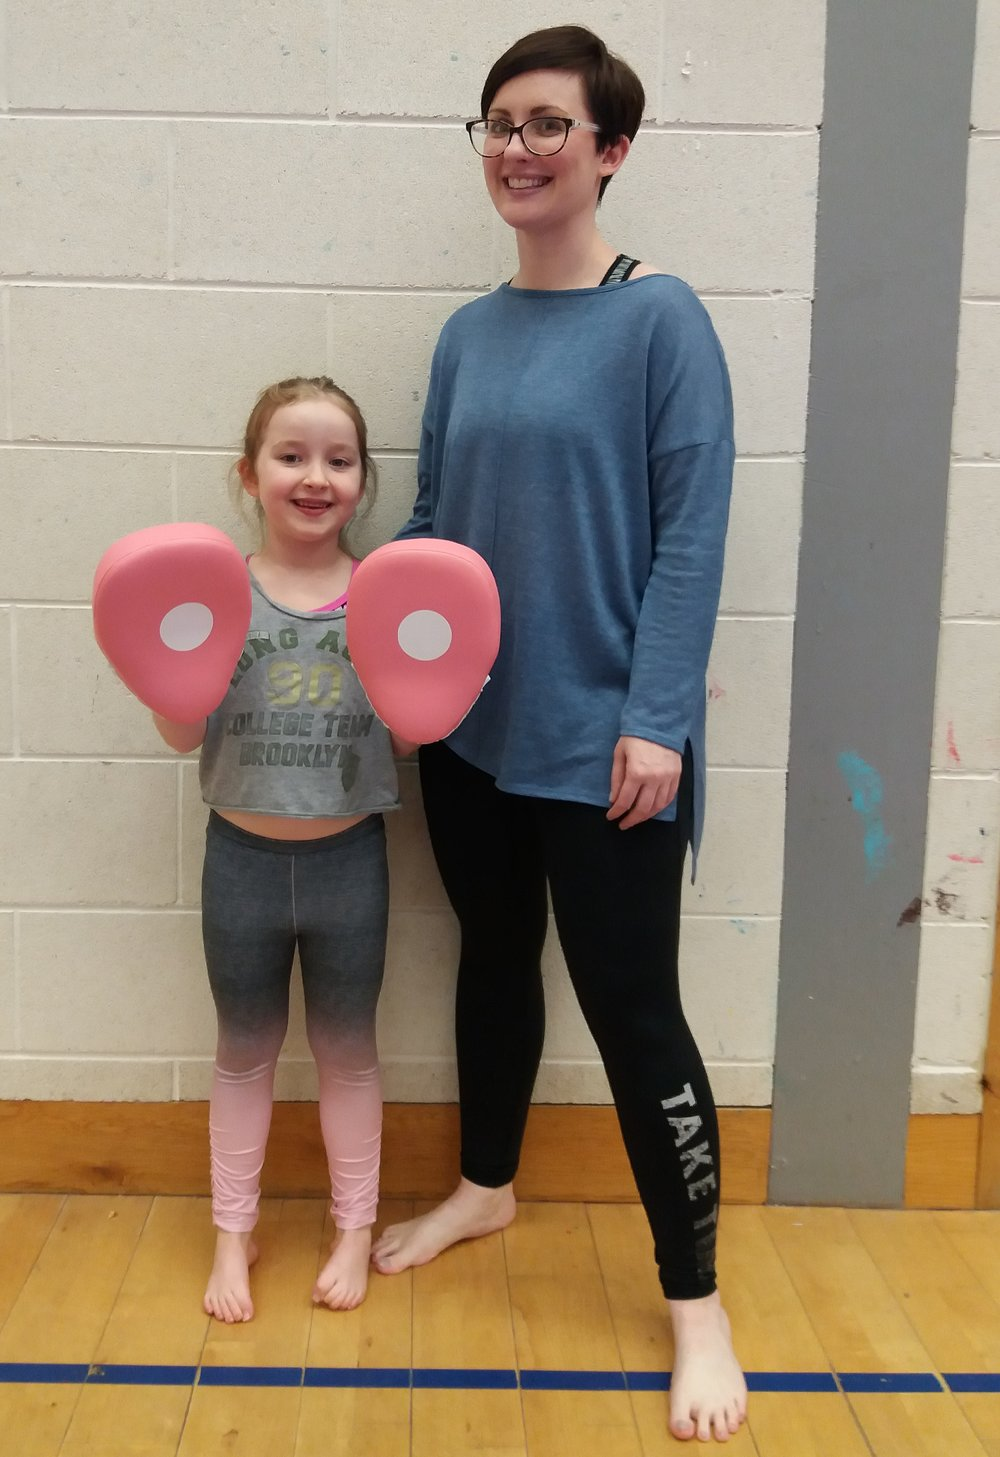 Testimonial - Mother and daughter Ruth and Gracie joined the Dundonald class in November. Here's what Ruth said: Mark & Sarah are amazing teachers! Gracie has never been able to stay at any clubs before now, she's a wee anxious soul and would never let me leave! The family class is the perfect solution for us and Gracie has gained so much confidence! She looks forward to it every week.No matter what your skill set or starting point RAPTR can be part of your Martial Arts journey!